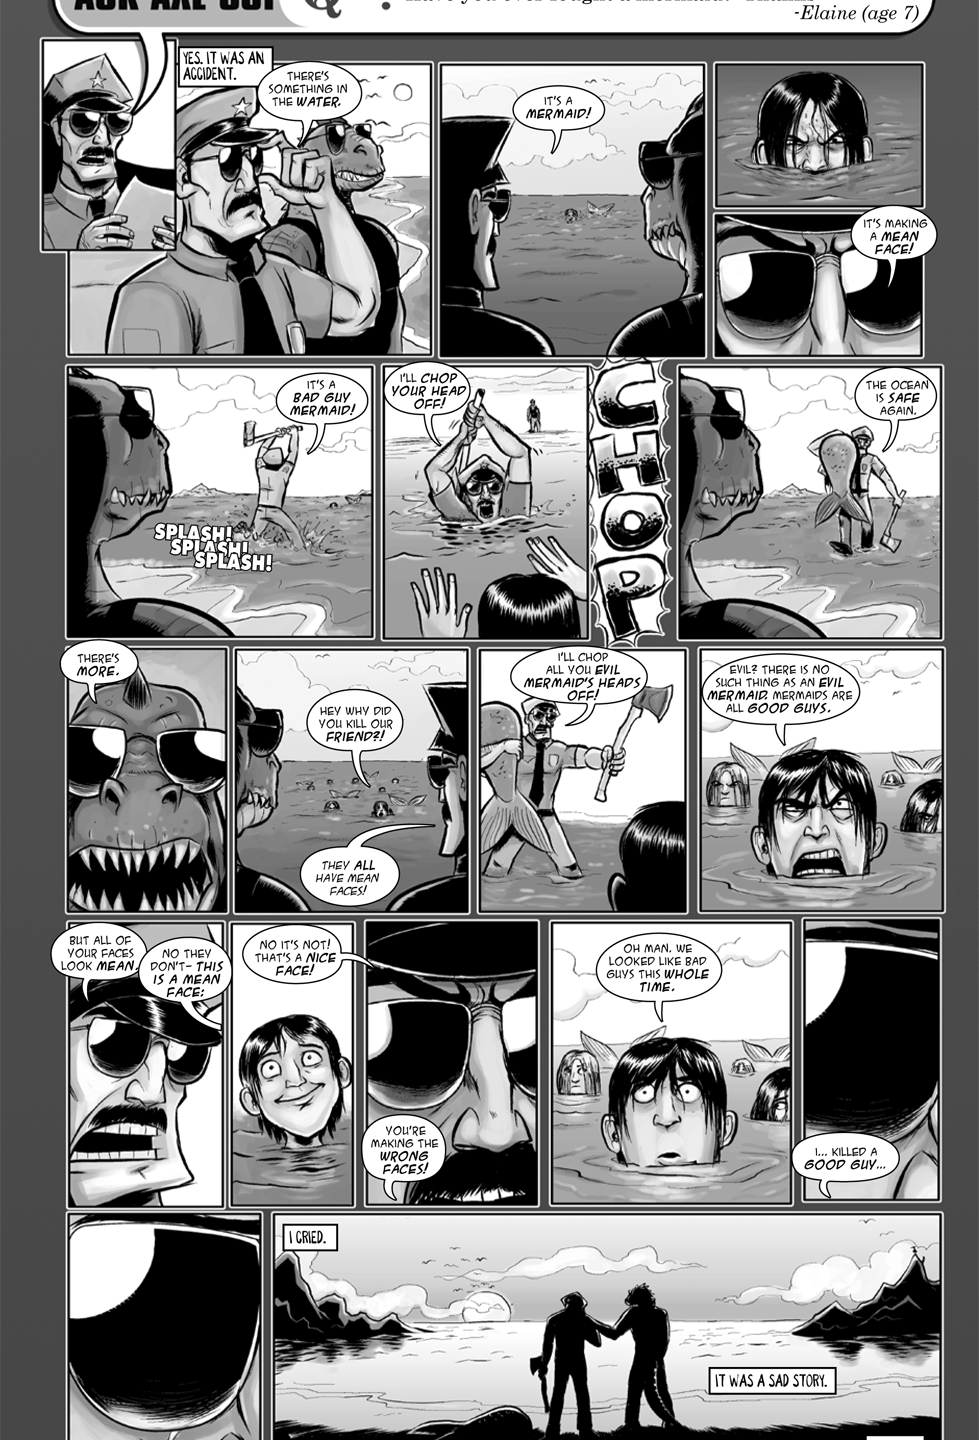 A significant moment for Axe Cop for a couple of reasons. First, the entire episode is based on a misunderstanding. Mermaids had been confused about what a nice face and a mean facial expression looks like, so Axe Cop mistook them for bad guys and killed a bunch of them. Then we see how seriously he takes his job when we witness him crying because he killed good guys. Original post: Original post: http://axecop.com/comic/ask-axe-cop-15/